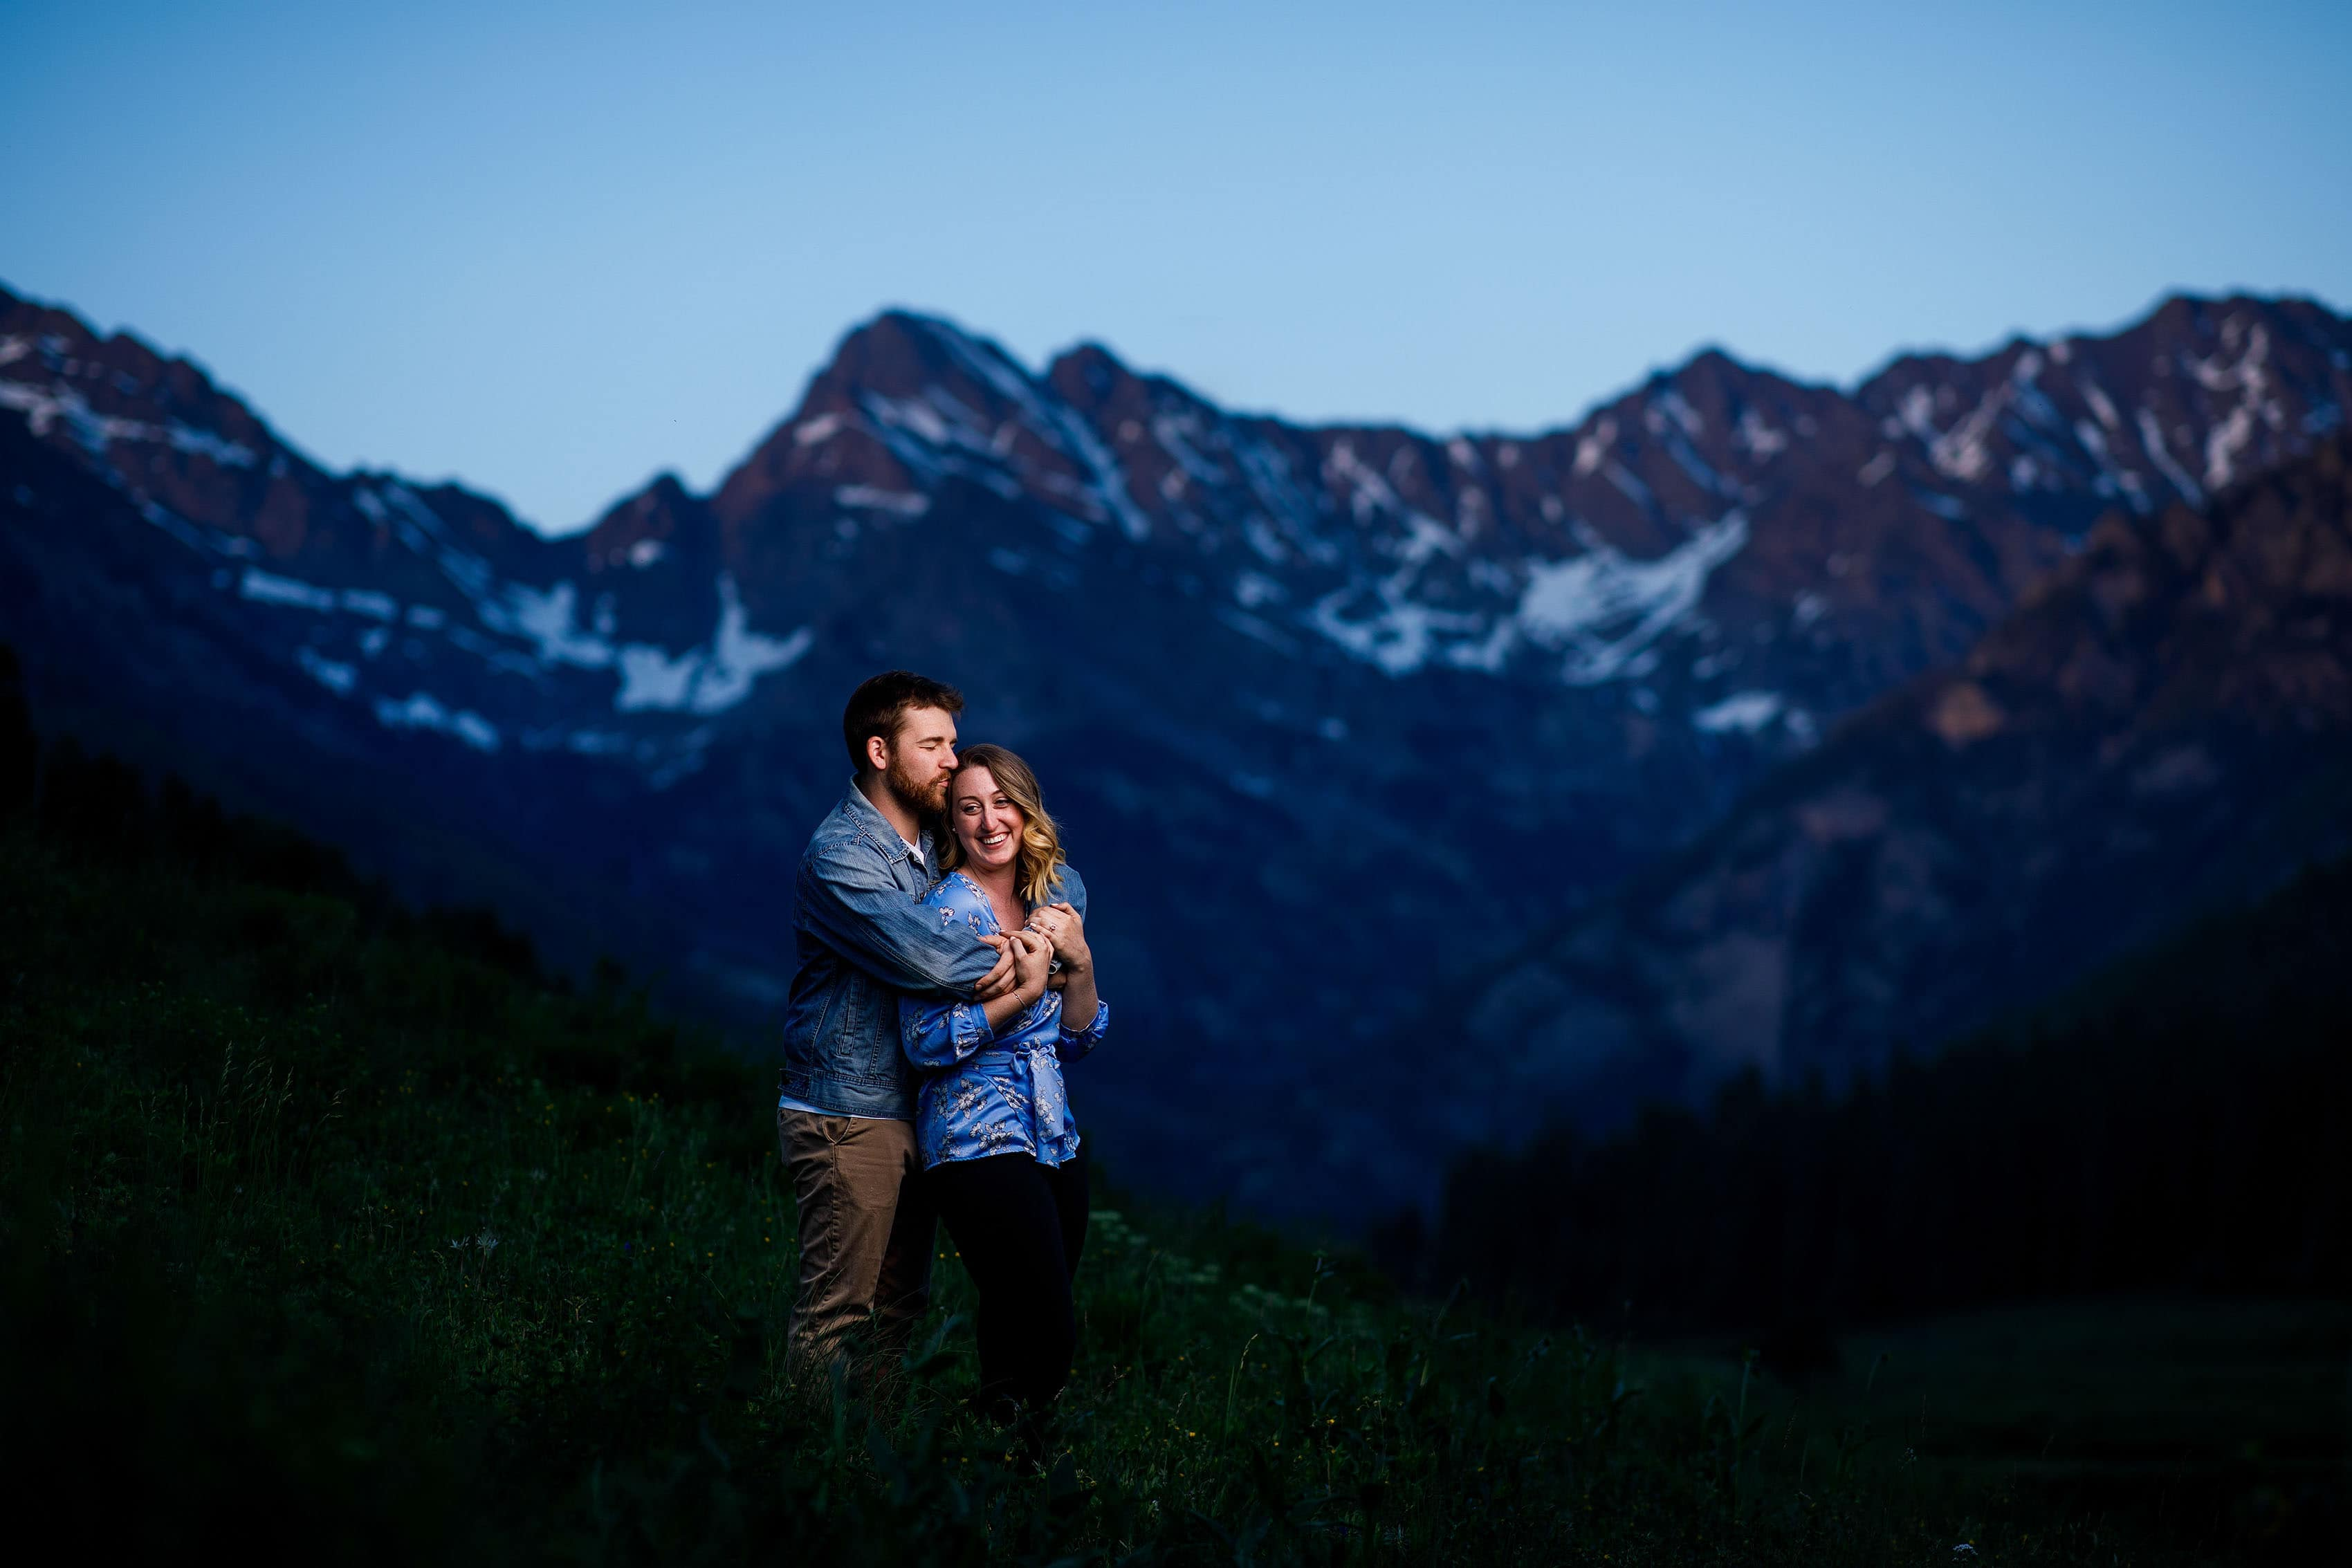 Laura and Ryan pose during their engagement at Piney River Ranch